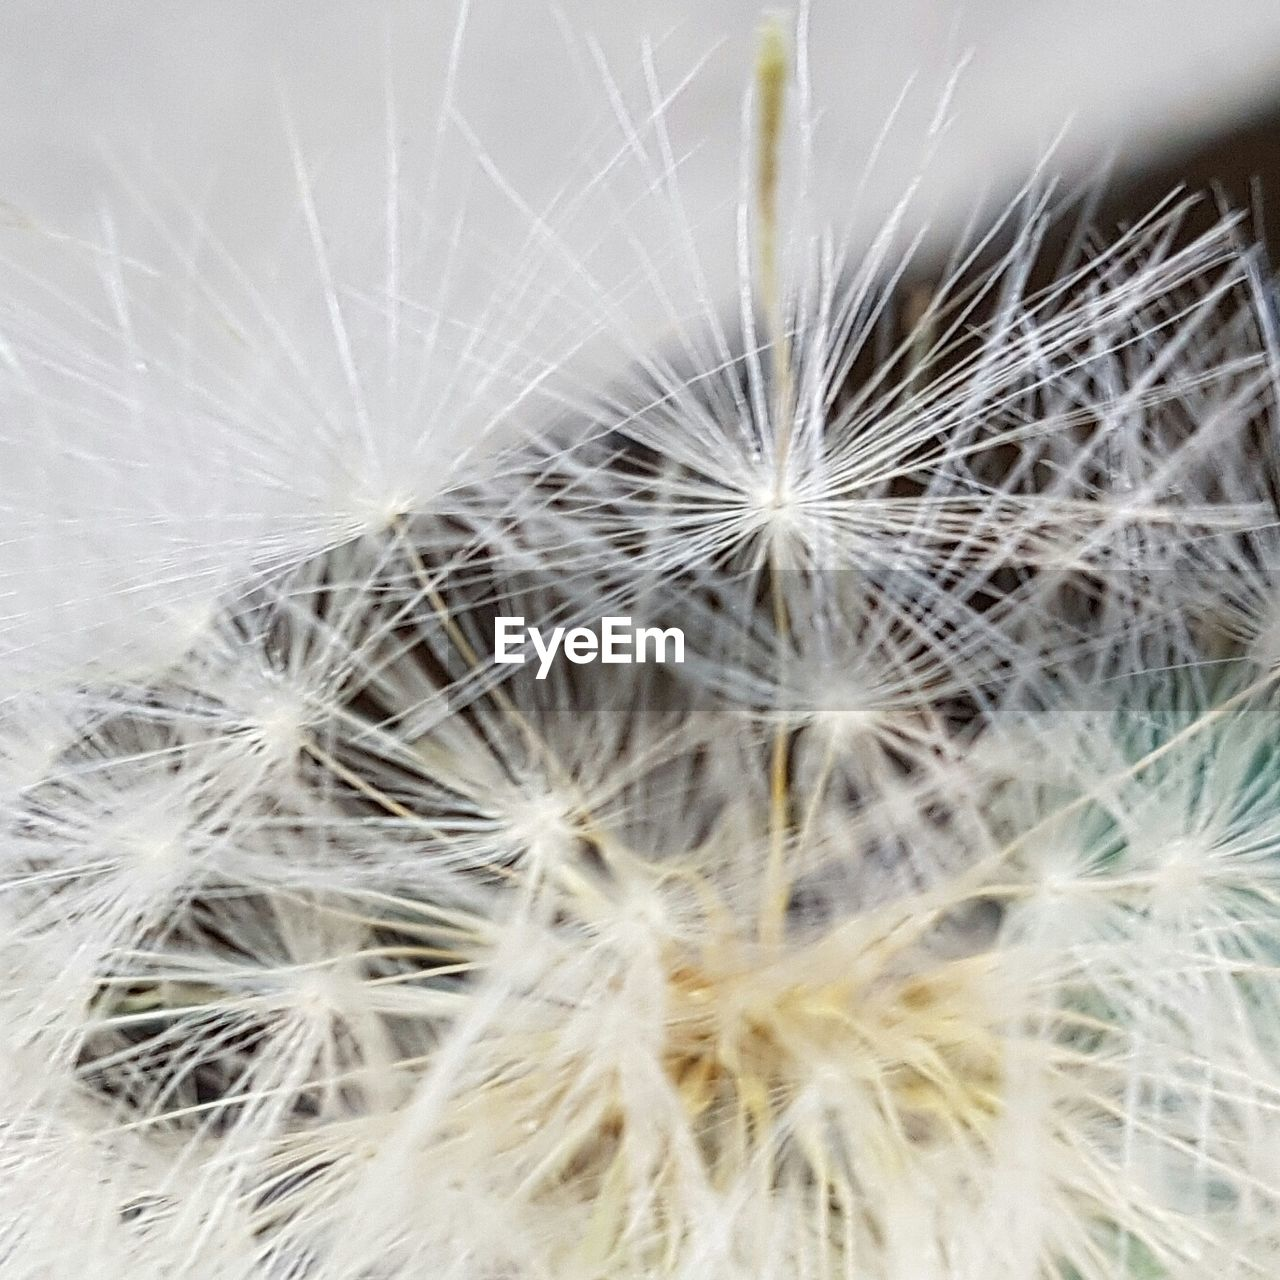 dandelion, flower, fragility, dandelion seed, softness, close-up, flower head, uncultivated, freshness, growth, wildflower, no people, nature, plant, beauty in nature, seed, backgrounds, full frame, outdoors, day